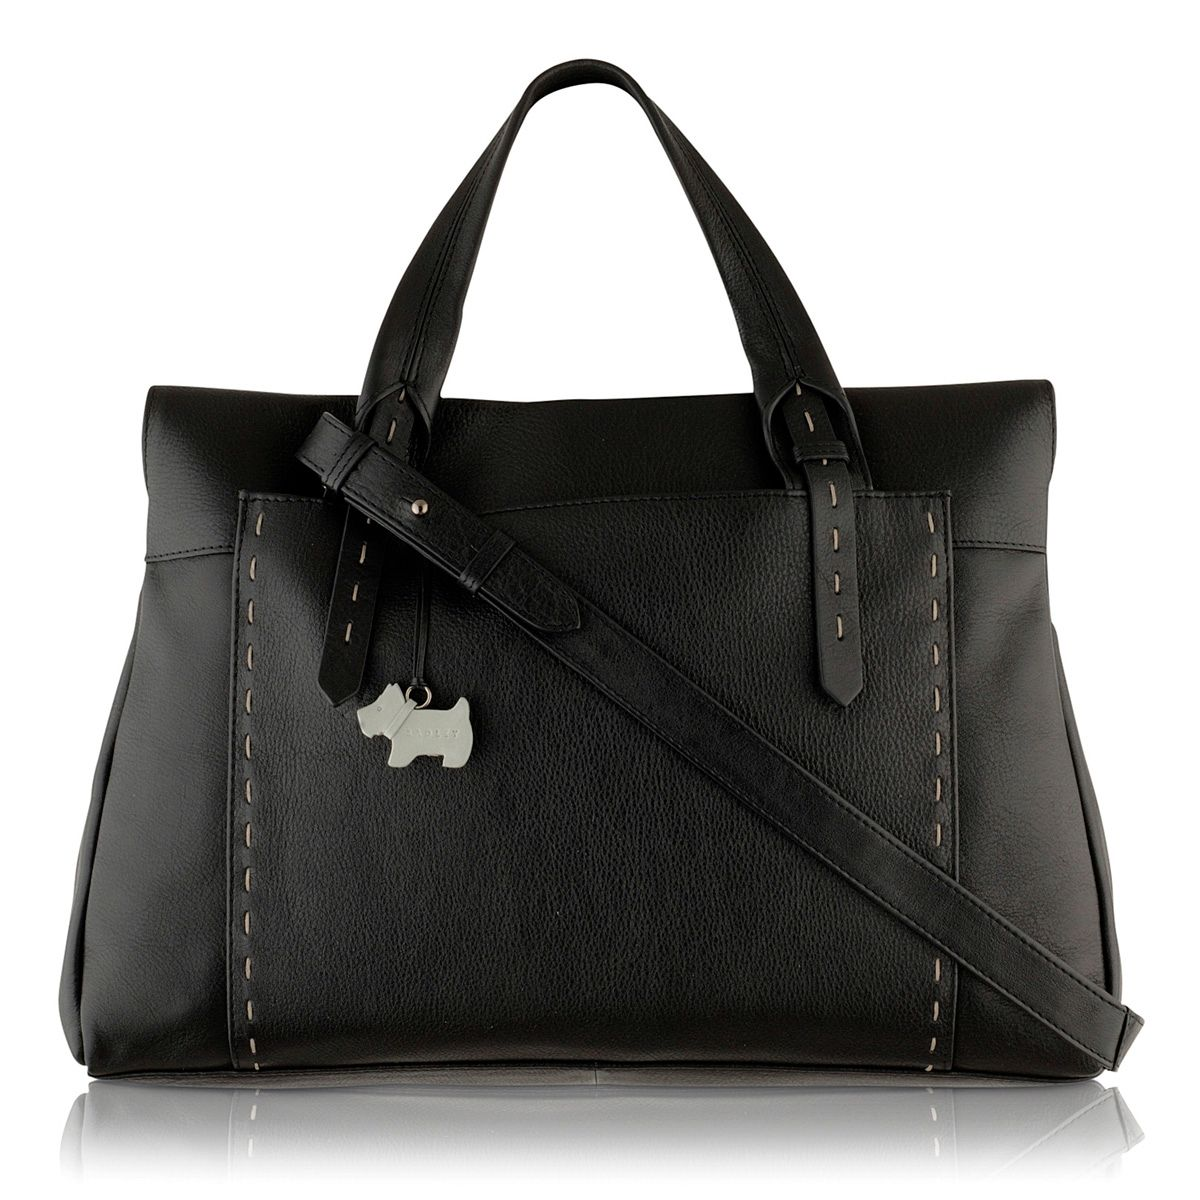 Barnsley large black crossbody leather tote bag